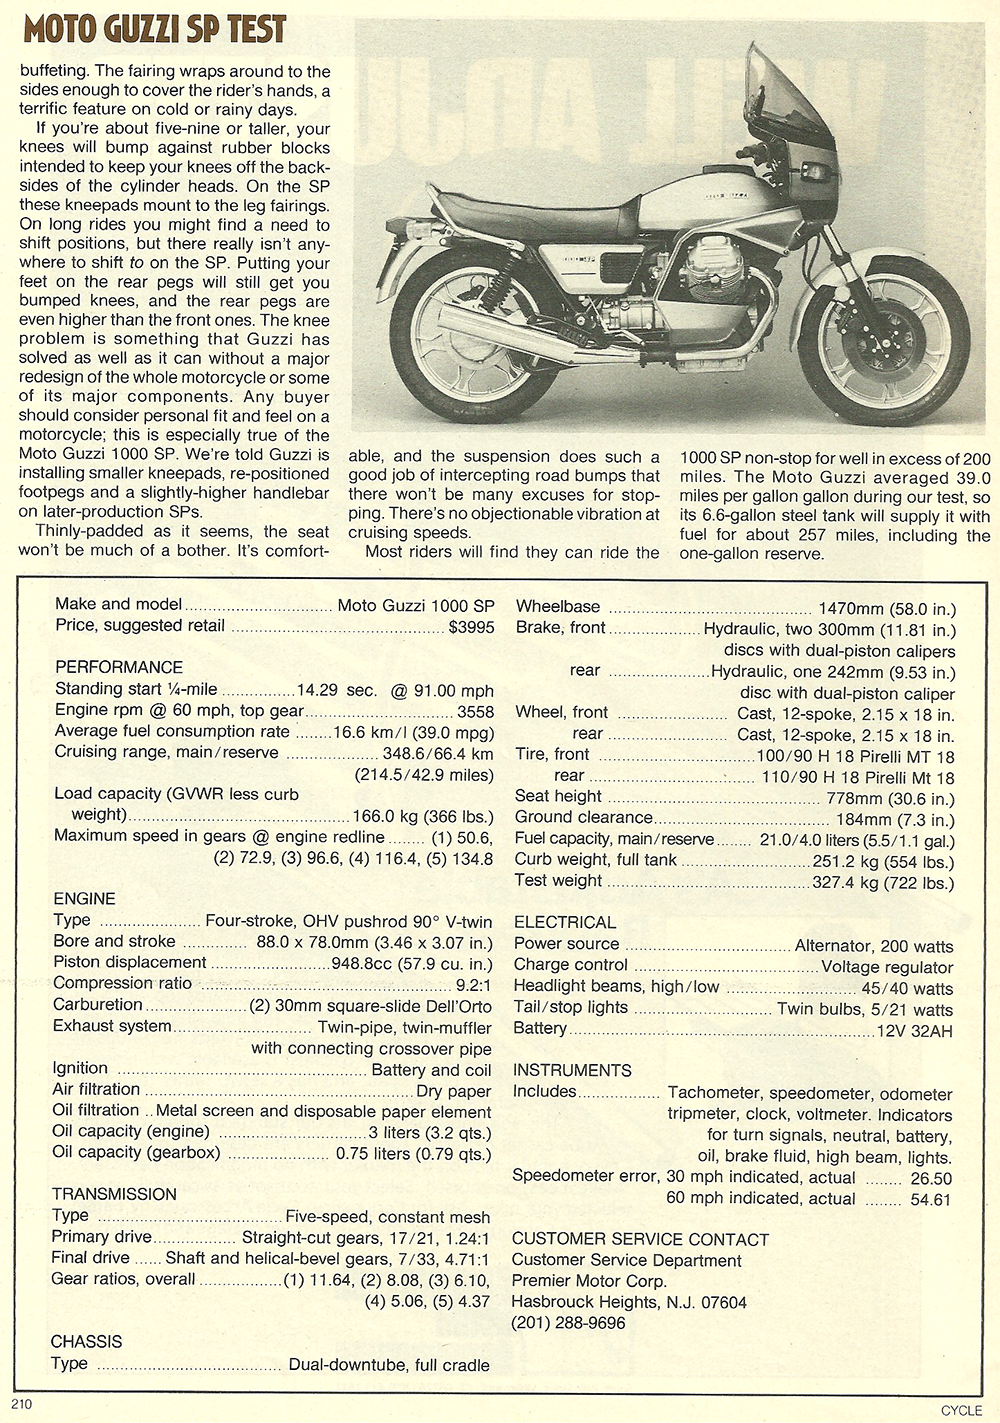 1979 Moto Guzzi 1000 SP road test 08.jpg